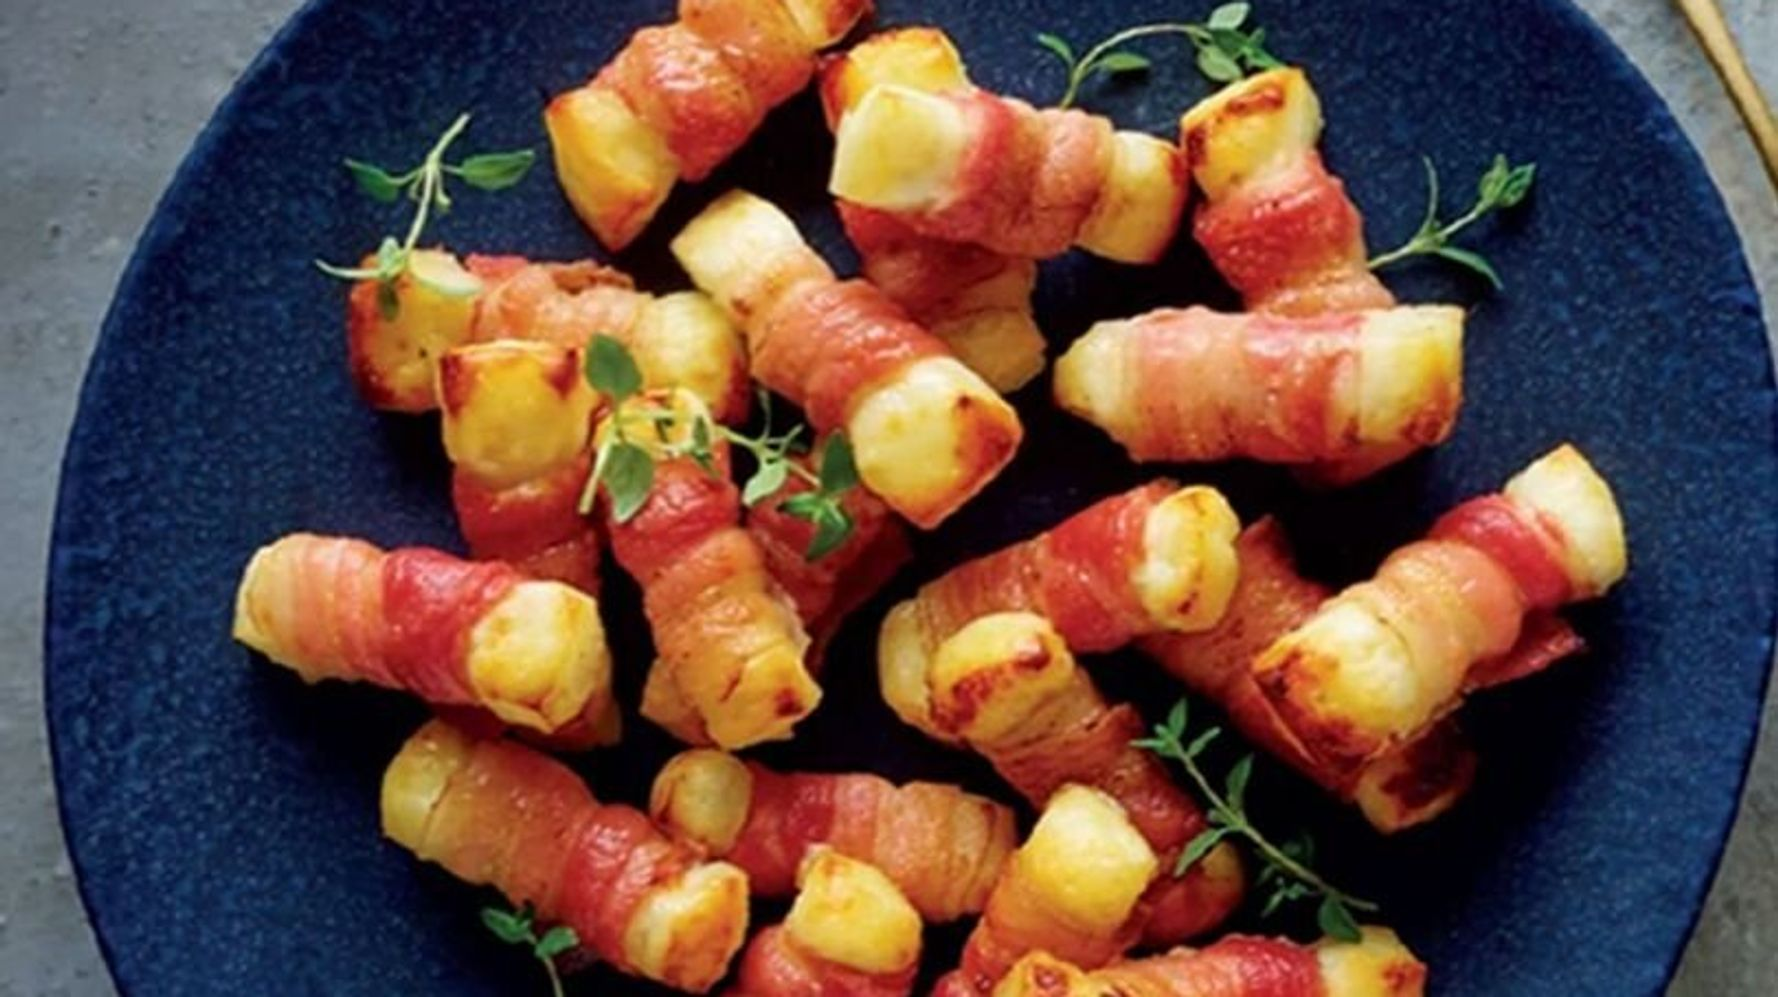 Aldi Unveils Halloumi Pigs-In-Blankets As Part Of Its 2019 Christmas Menu